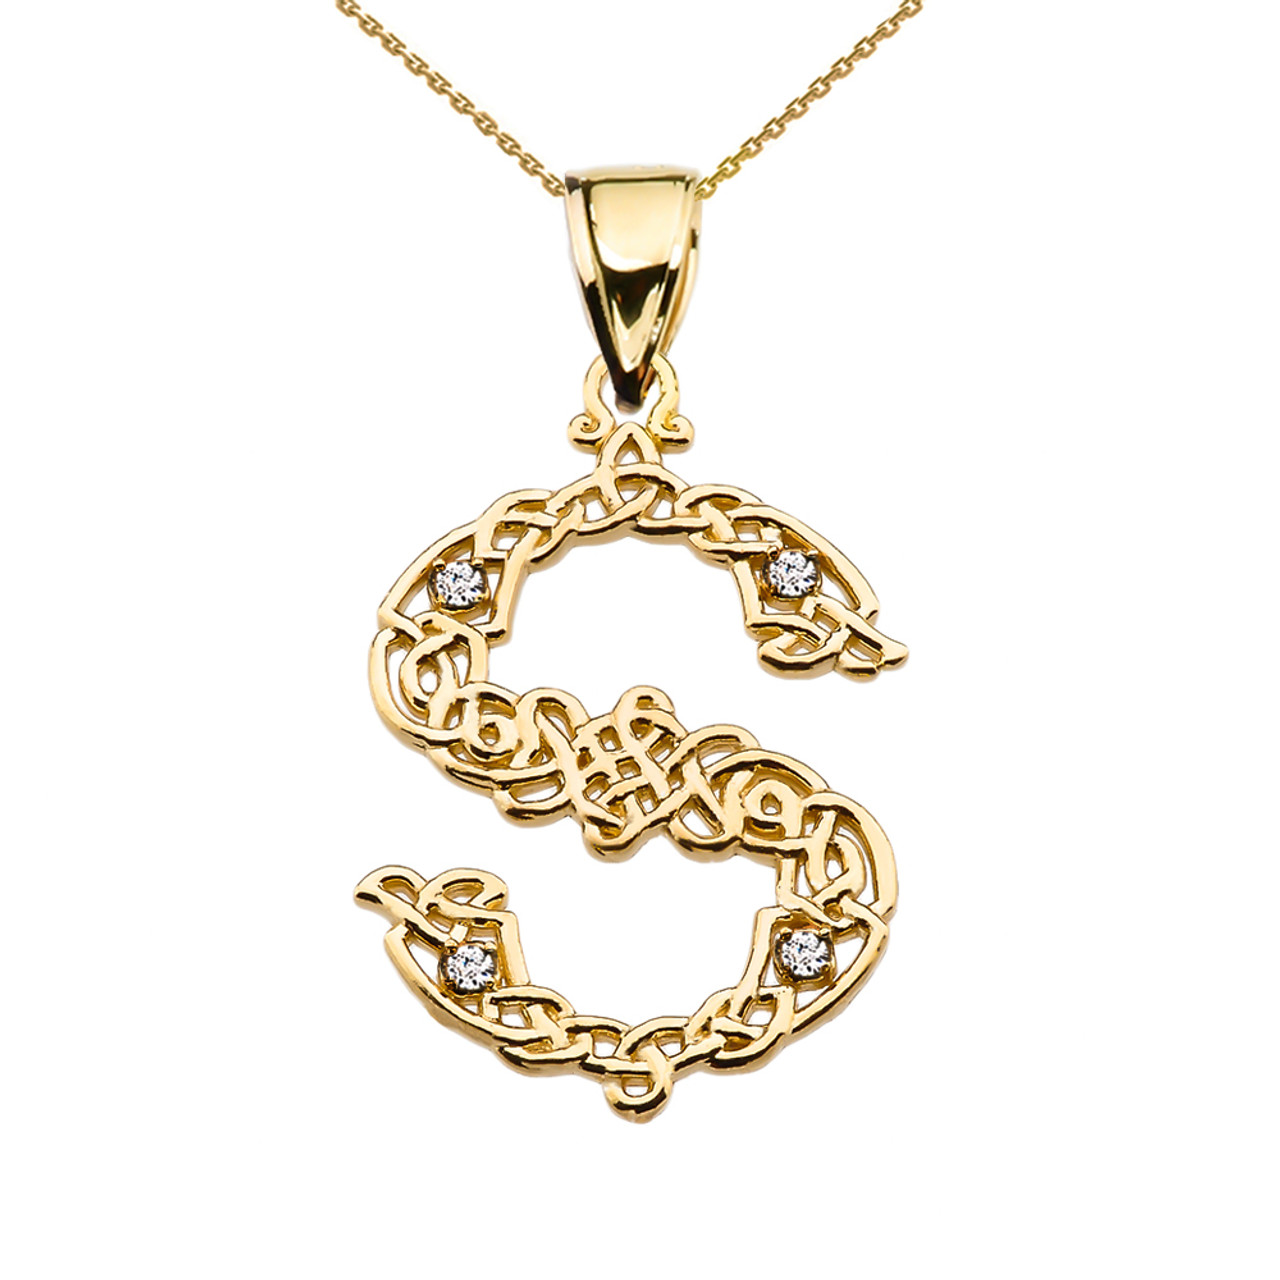 S initial in celtic knot pattern yellow gold pendant necklace with s initial in celtic knot pattern yellow gold pendant necklace with diamond aloadofball Gallery